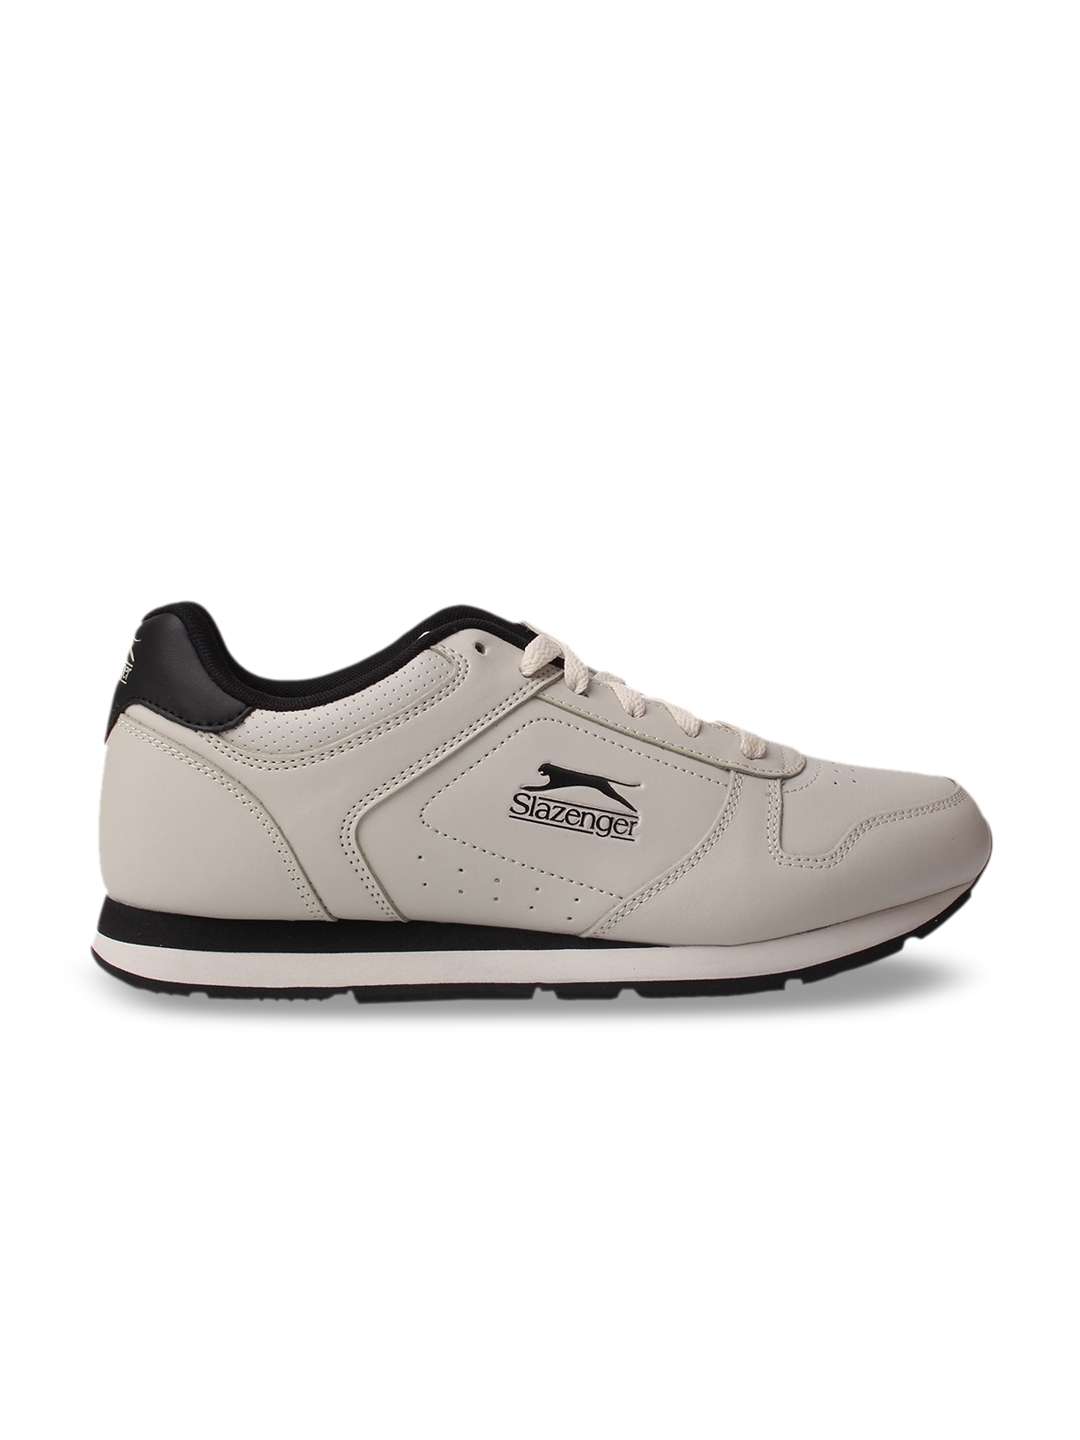 ea264b1dc79 Slazenger Men Off-White Leather Training Shoes. This product is already at  its best price